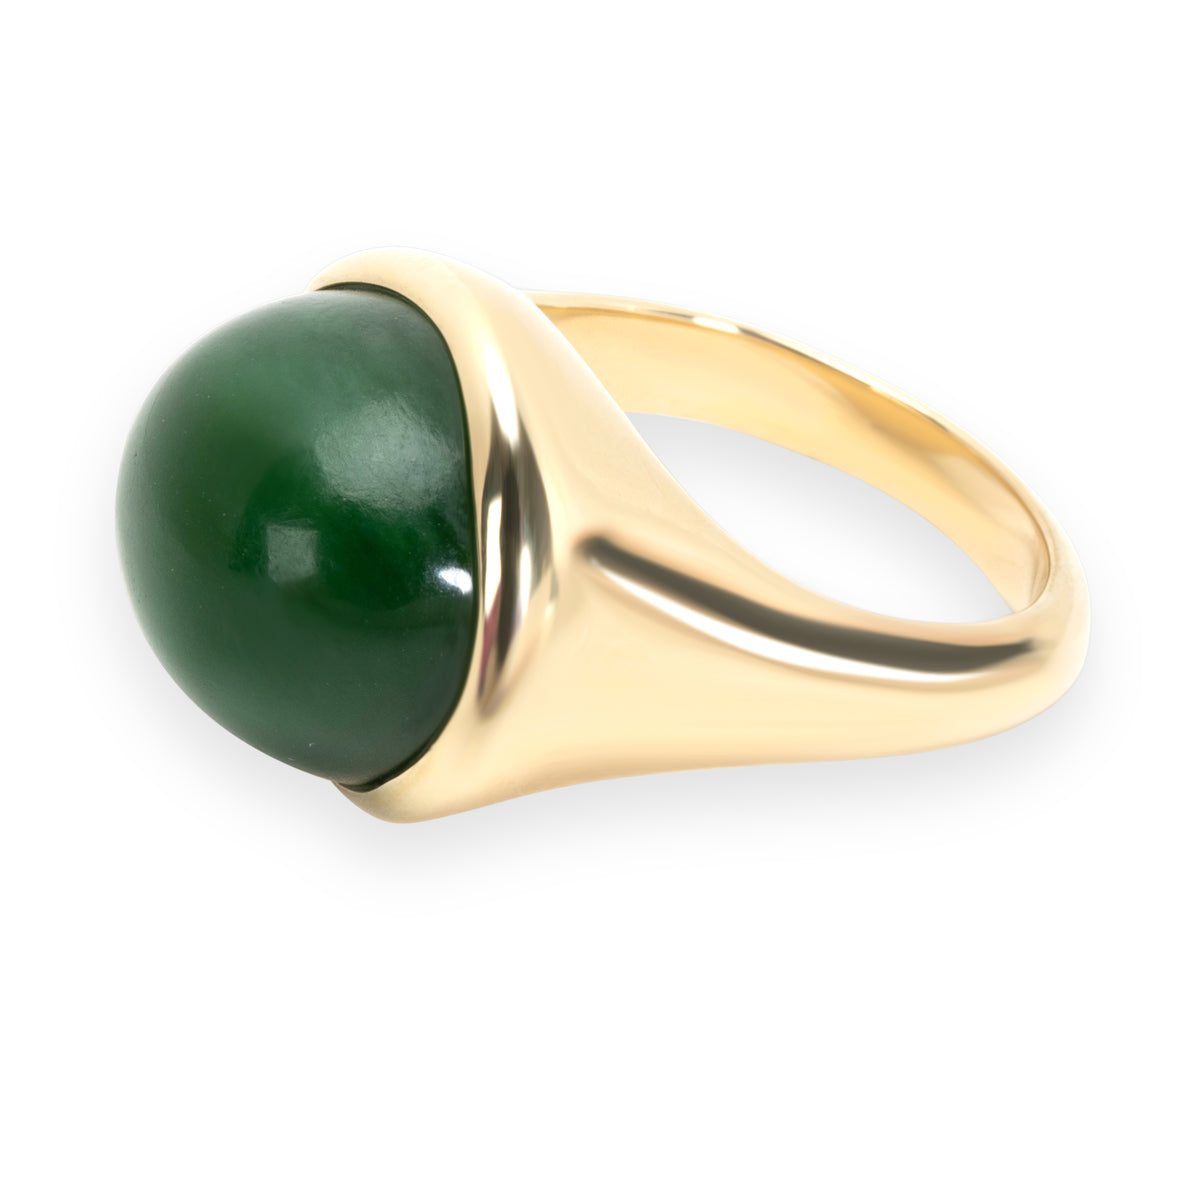 Tiffany & Co. Elsa Peretti Green Jade Cabochon Ring in 18K Yellow Gold